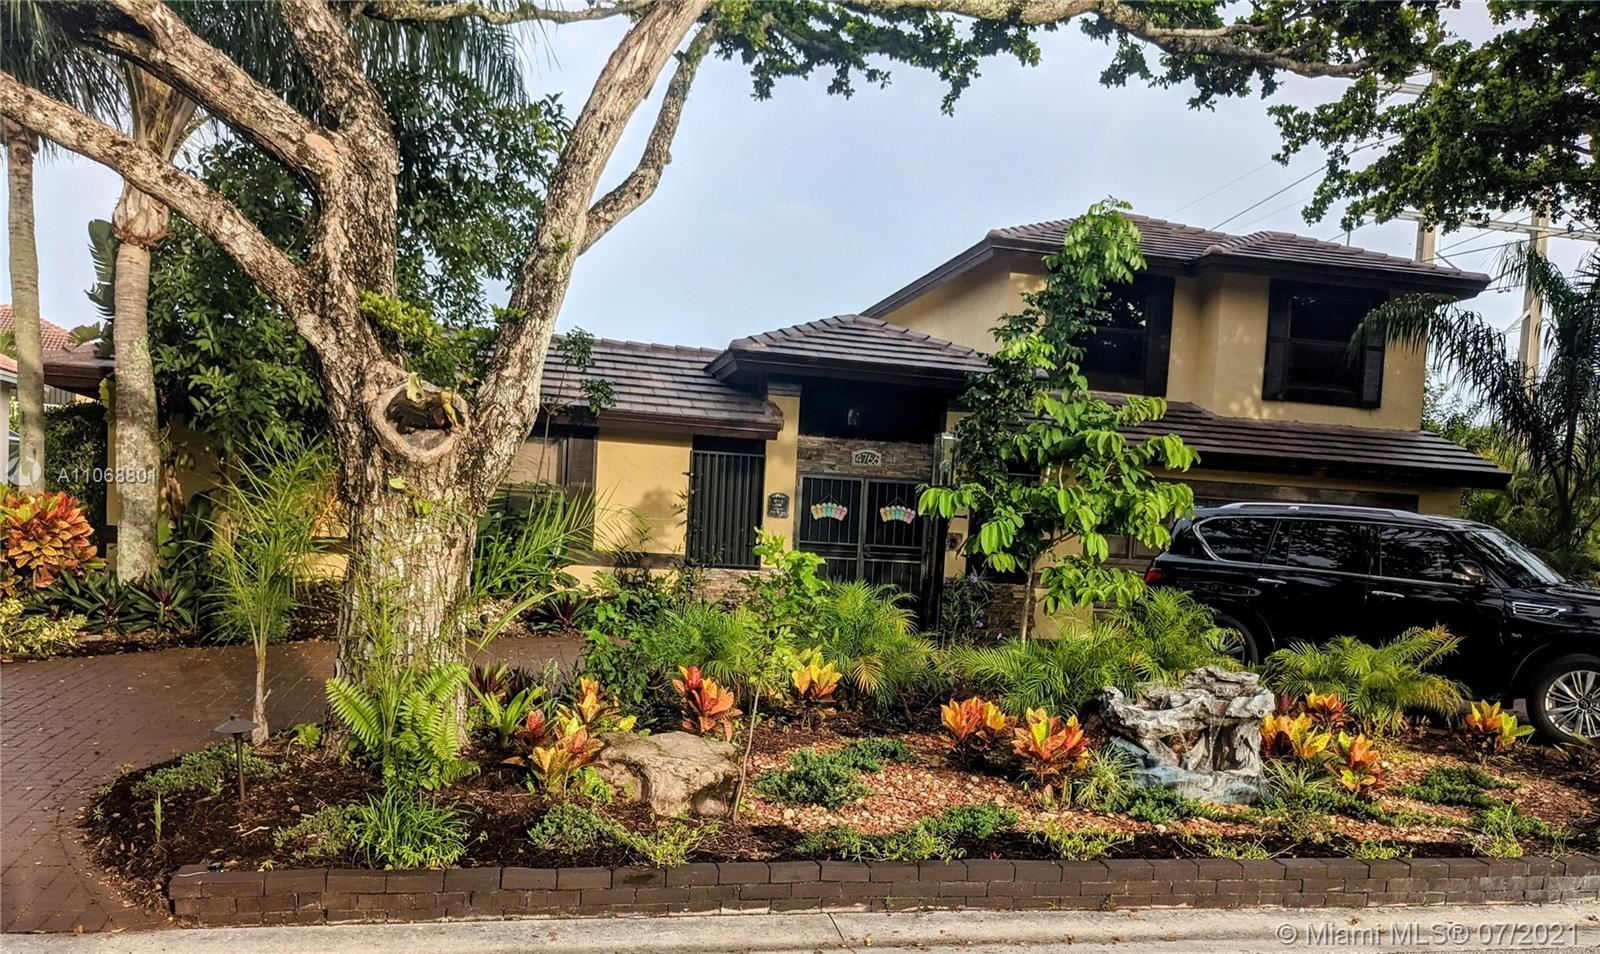 4766 Rothschild Dr, Coral Springs, FL 33067 - #: A11068801